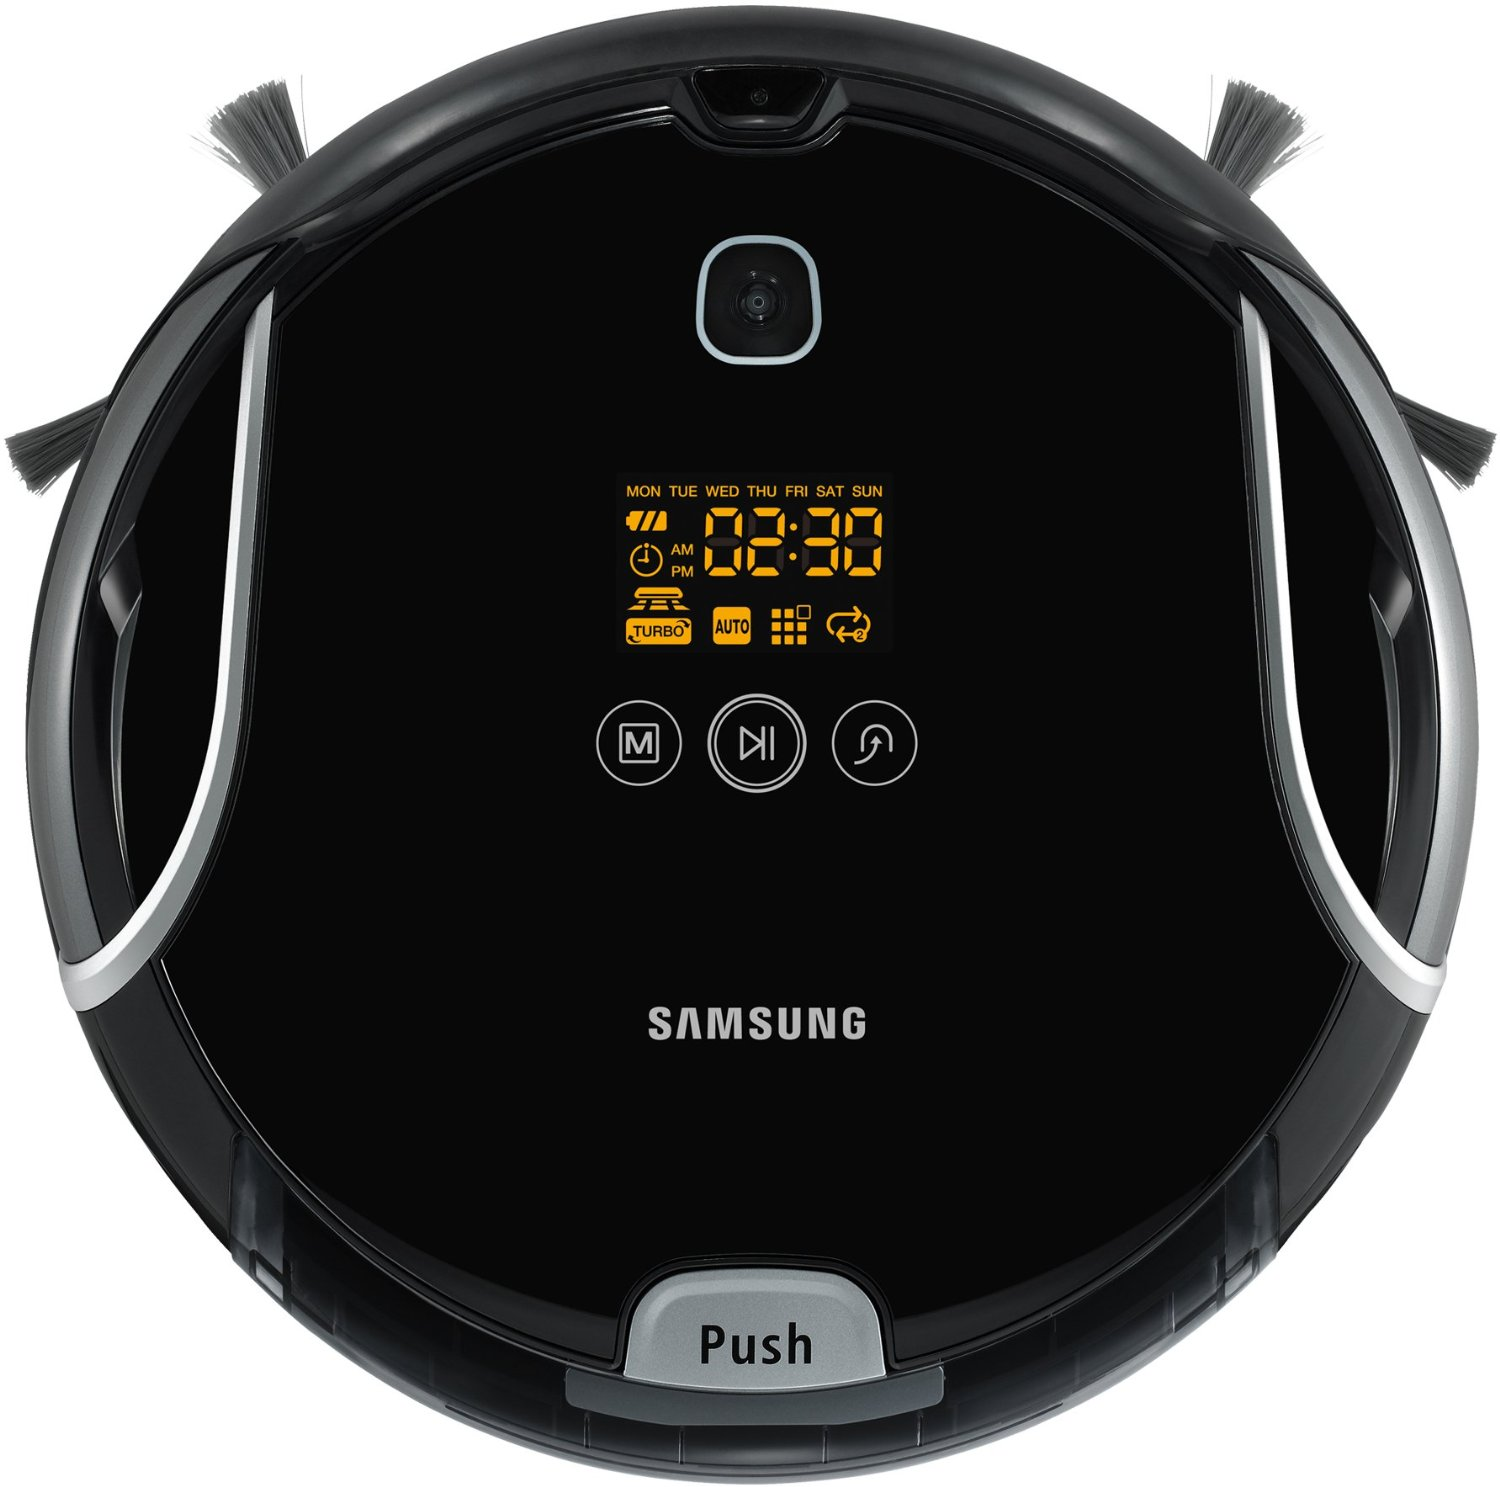 staubsauger roboter testbericht samsung navibot sr8980 roboter test portal. Black Bedroom Furniture Sets. Home Design Ideas